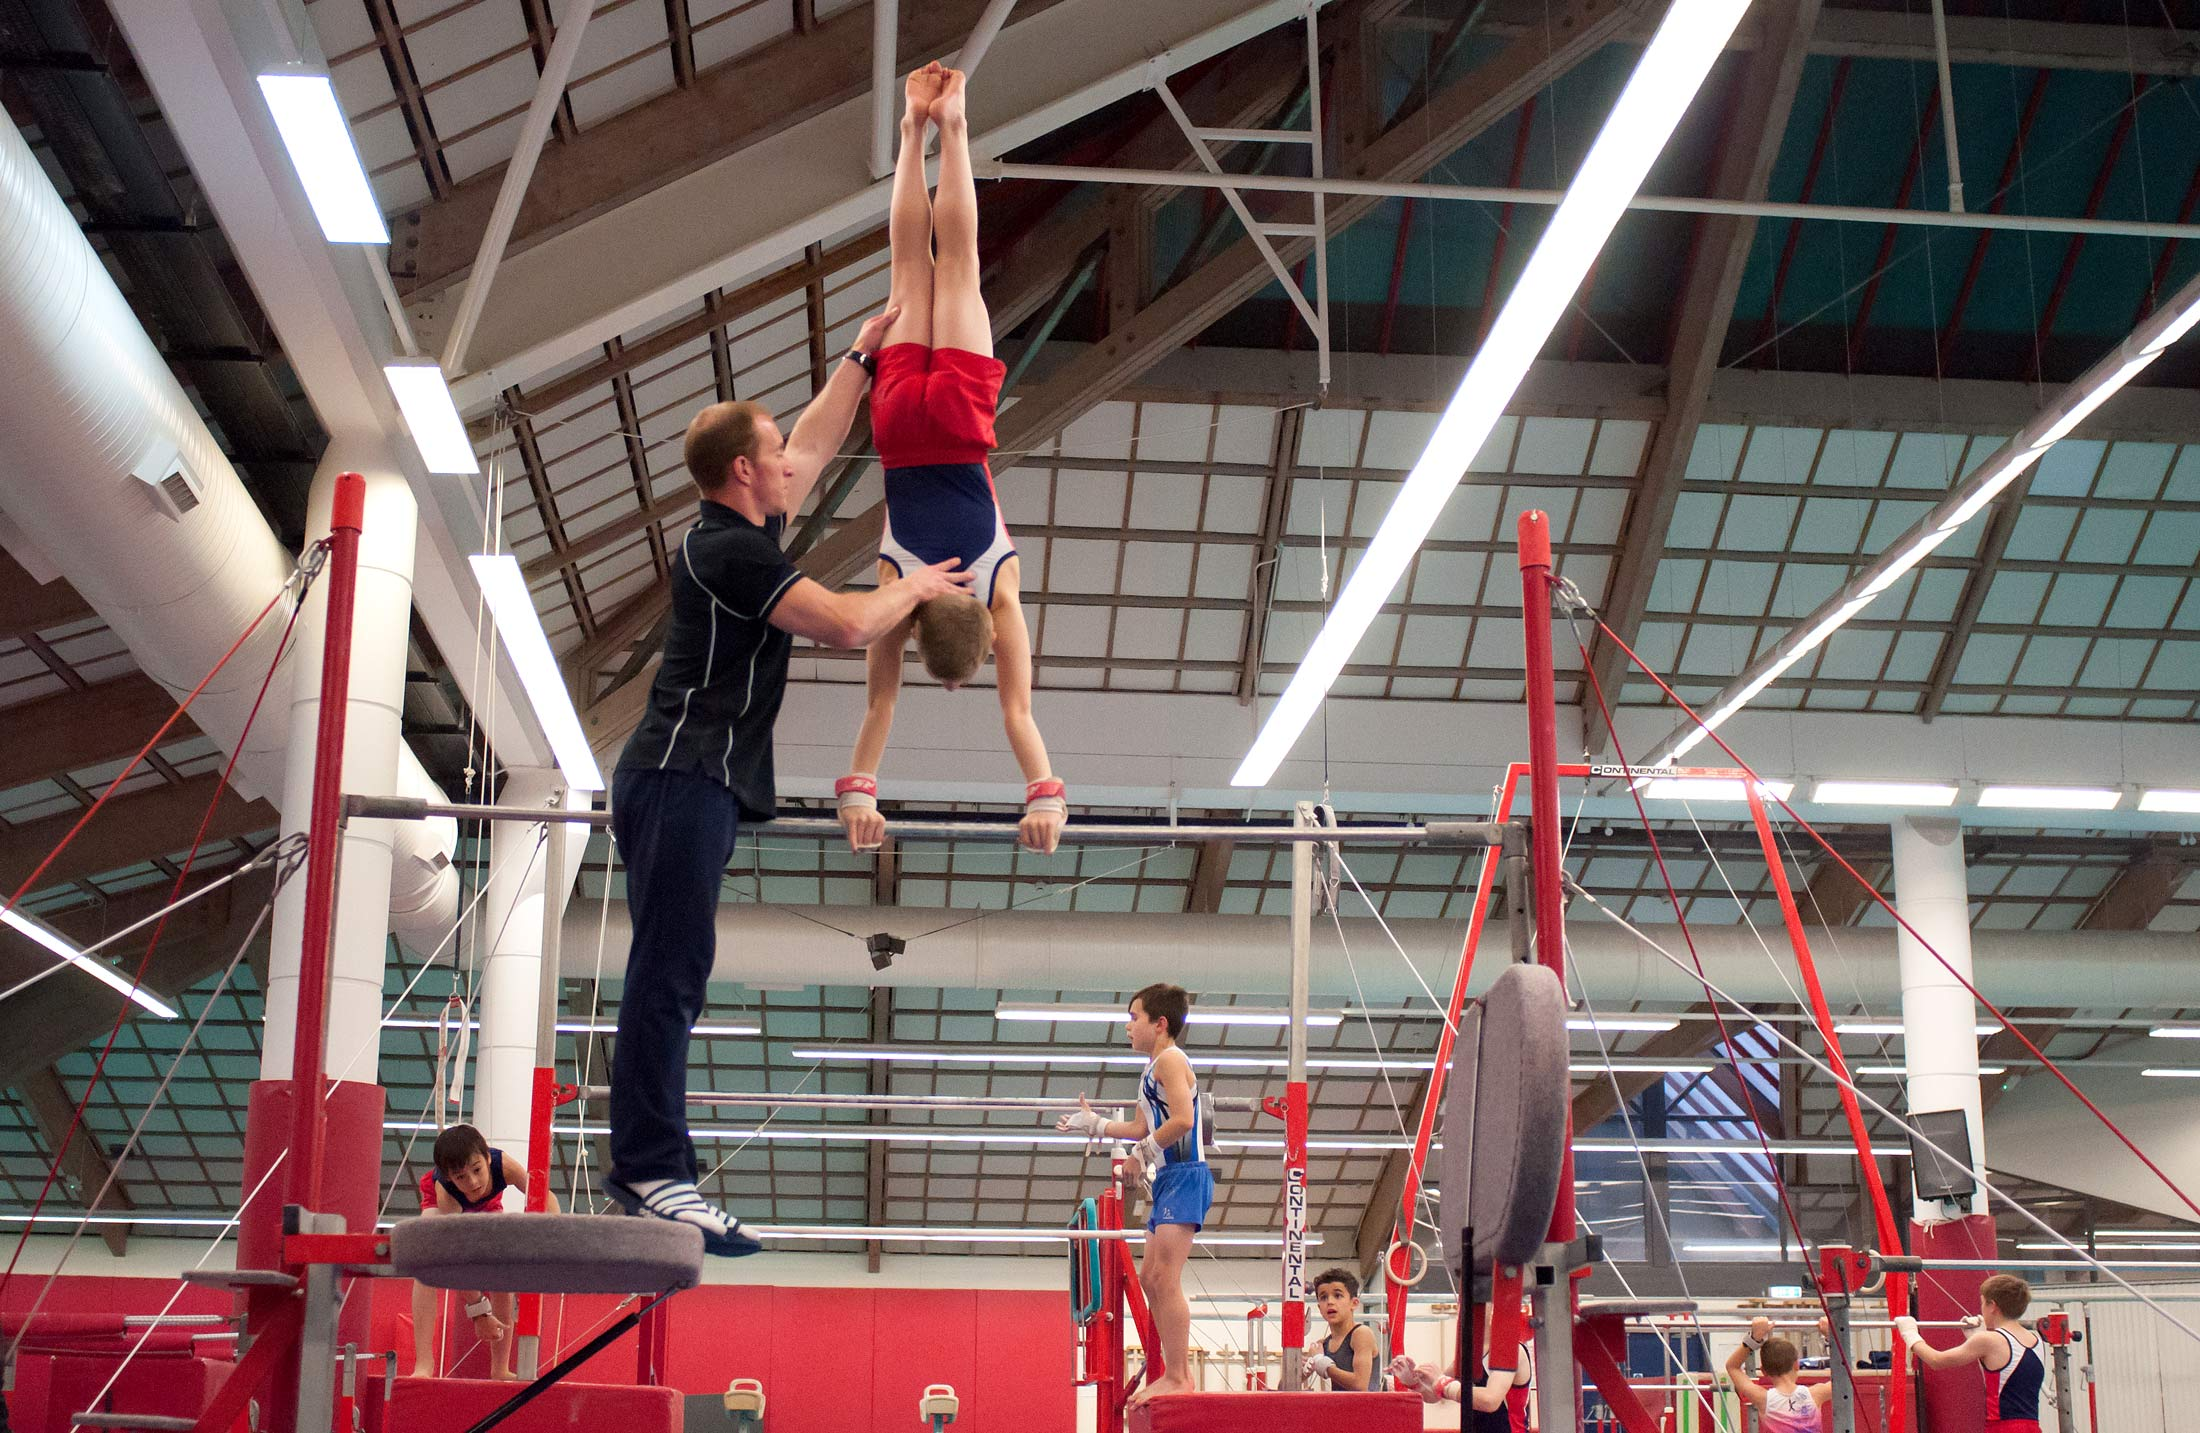 gymnast and coach handstand on high bar